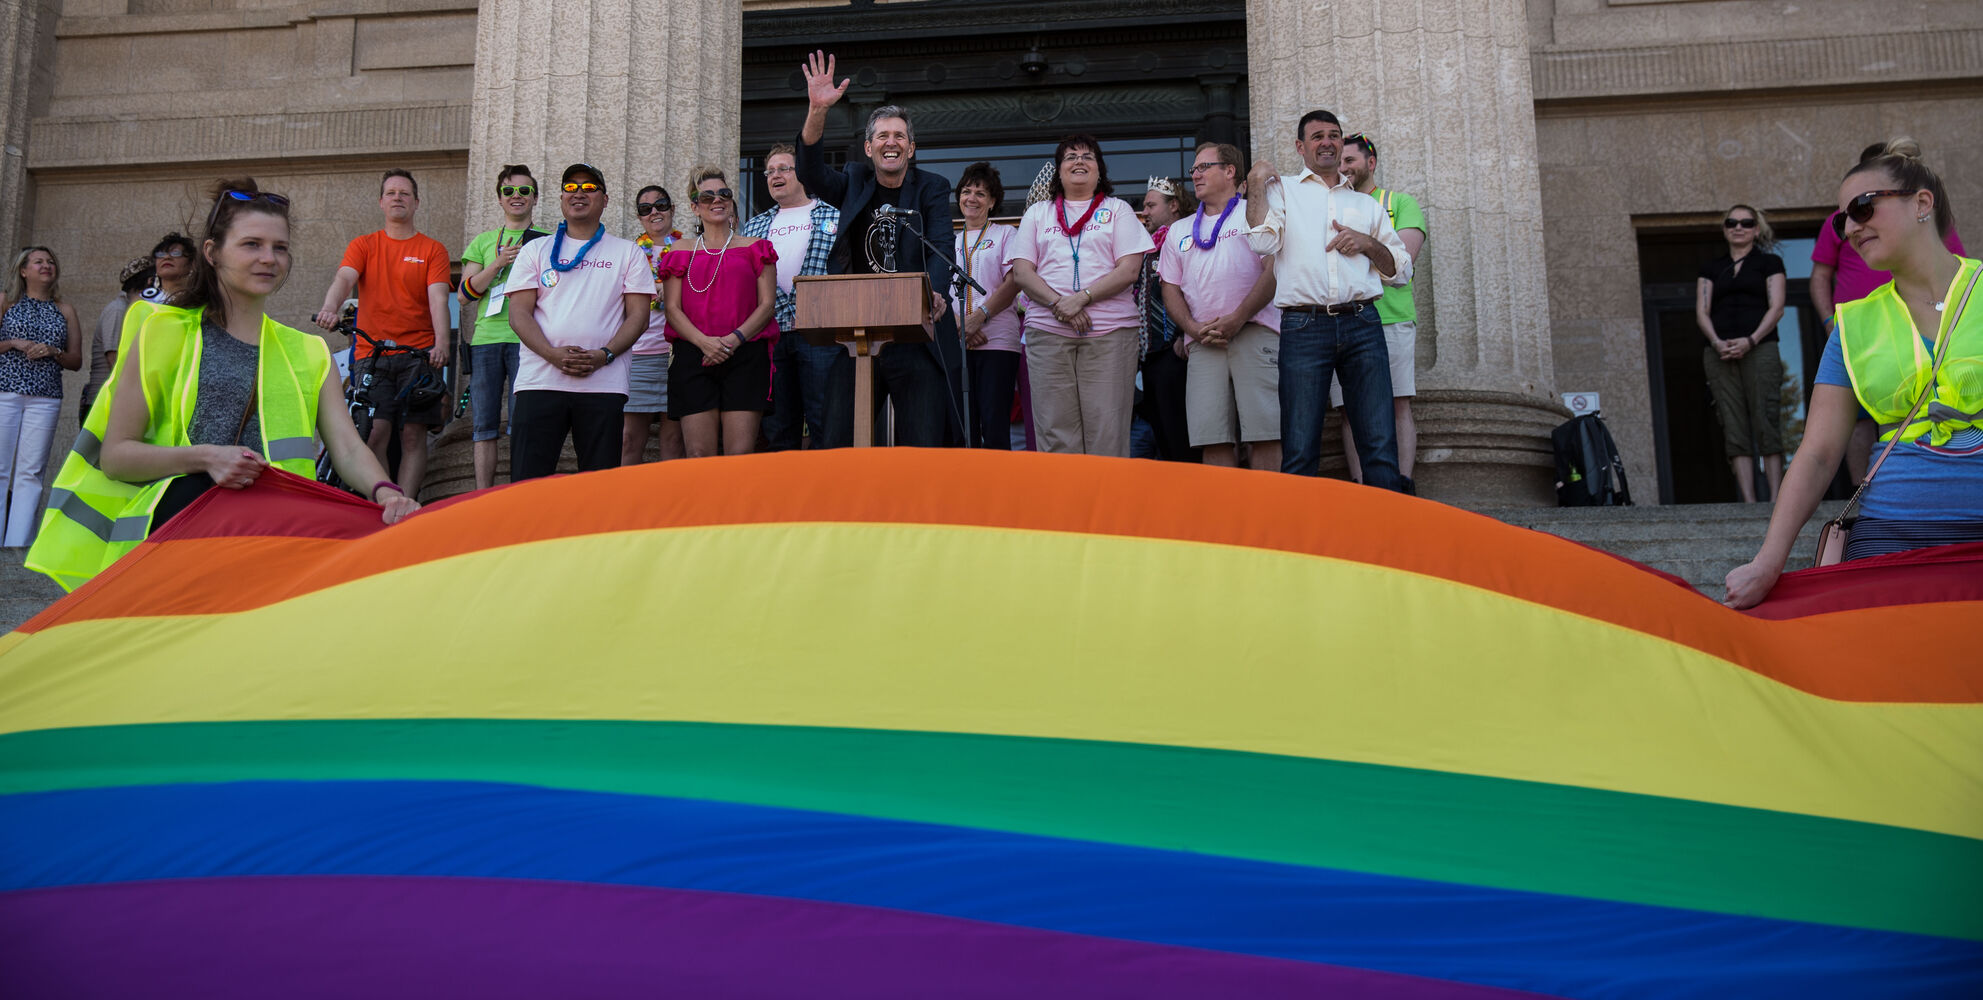 Premier Brian Pallister speaks to the crowd gathered on the steps of the Manitoba Legislative Building before the start of the Pride Parade Sunday.  (Mike Deal / Winnipeg Free Press)